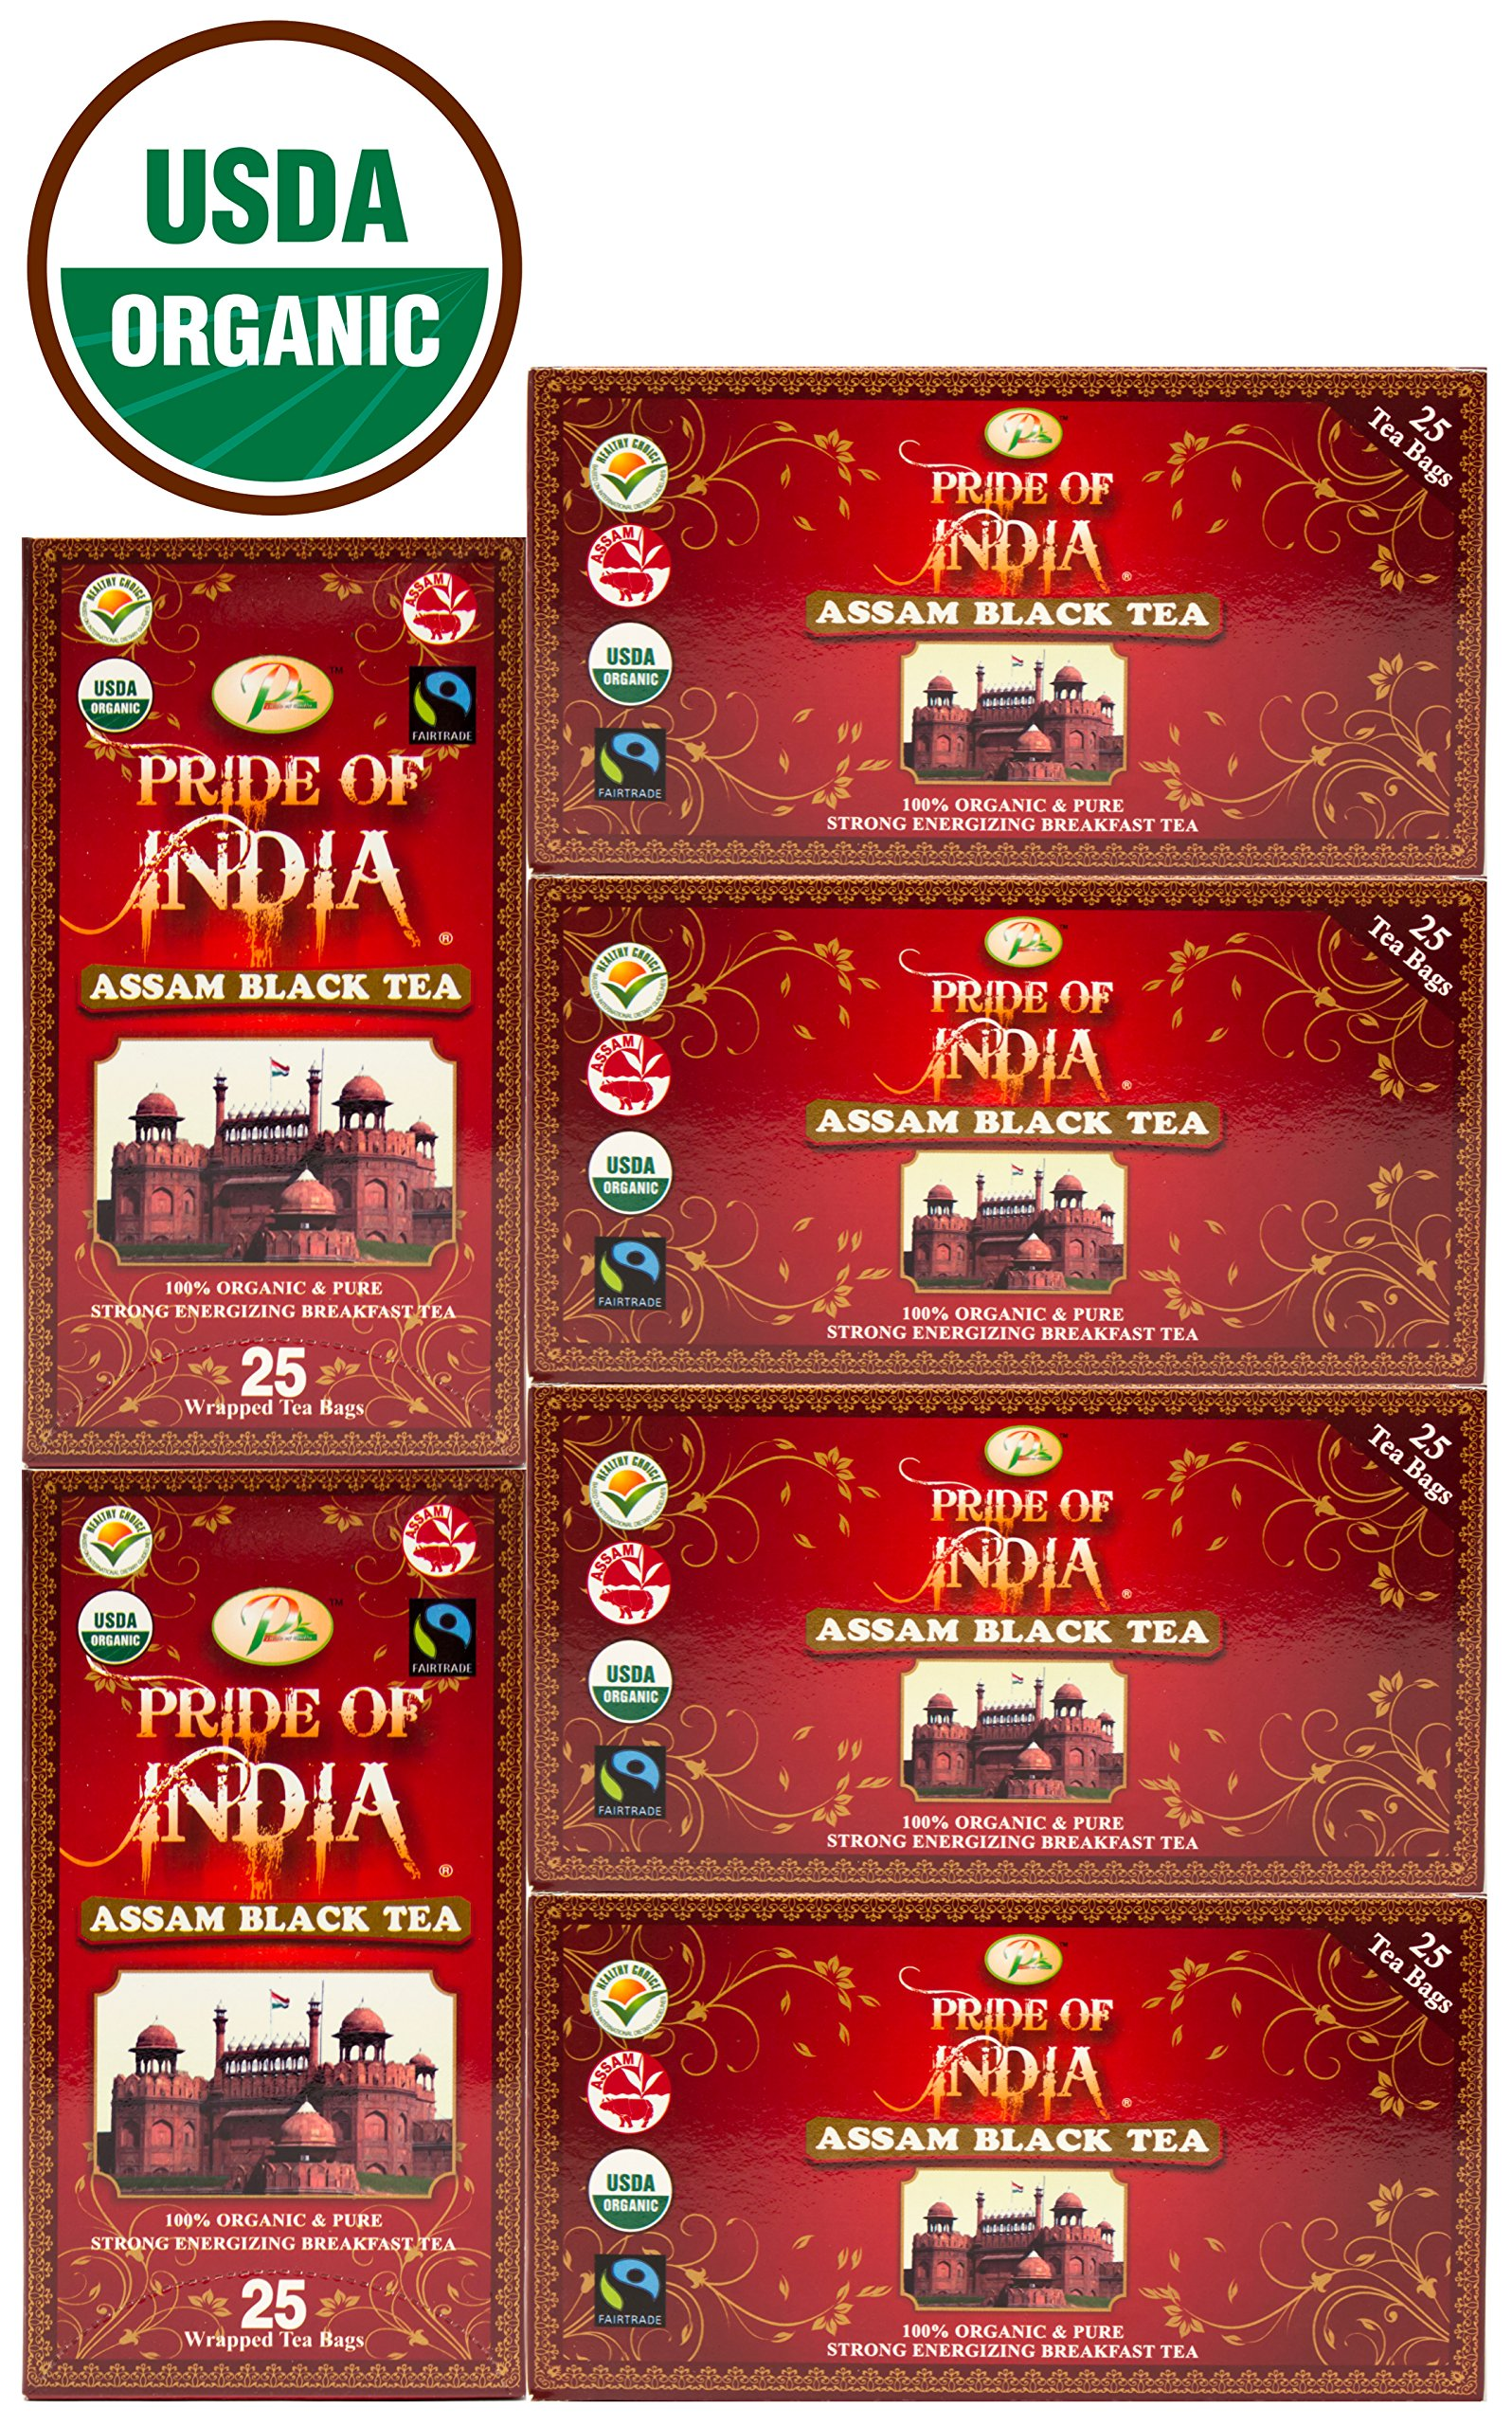 Pride Of India - Organic Indian Assam Breakfast Black Tea, 25 Count (6-Pack) REGULAR PRICE: $27.99, HOLIDAY LIMITED TIME SALE PRICE: $24.99